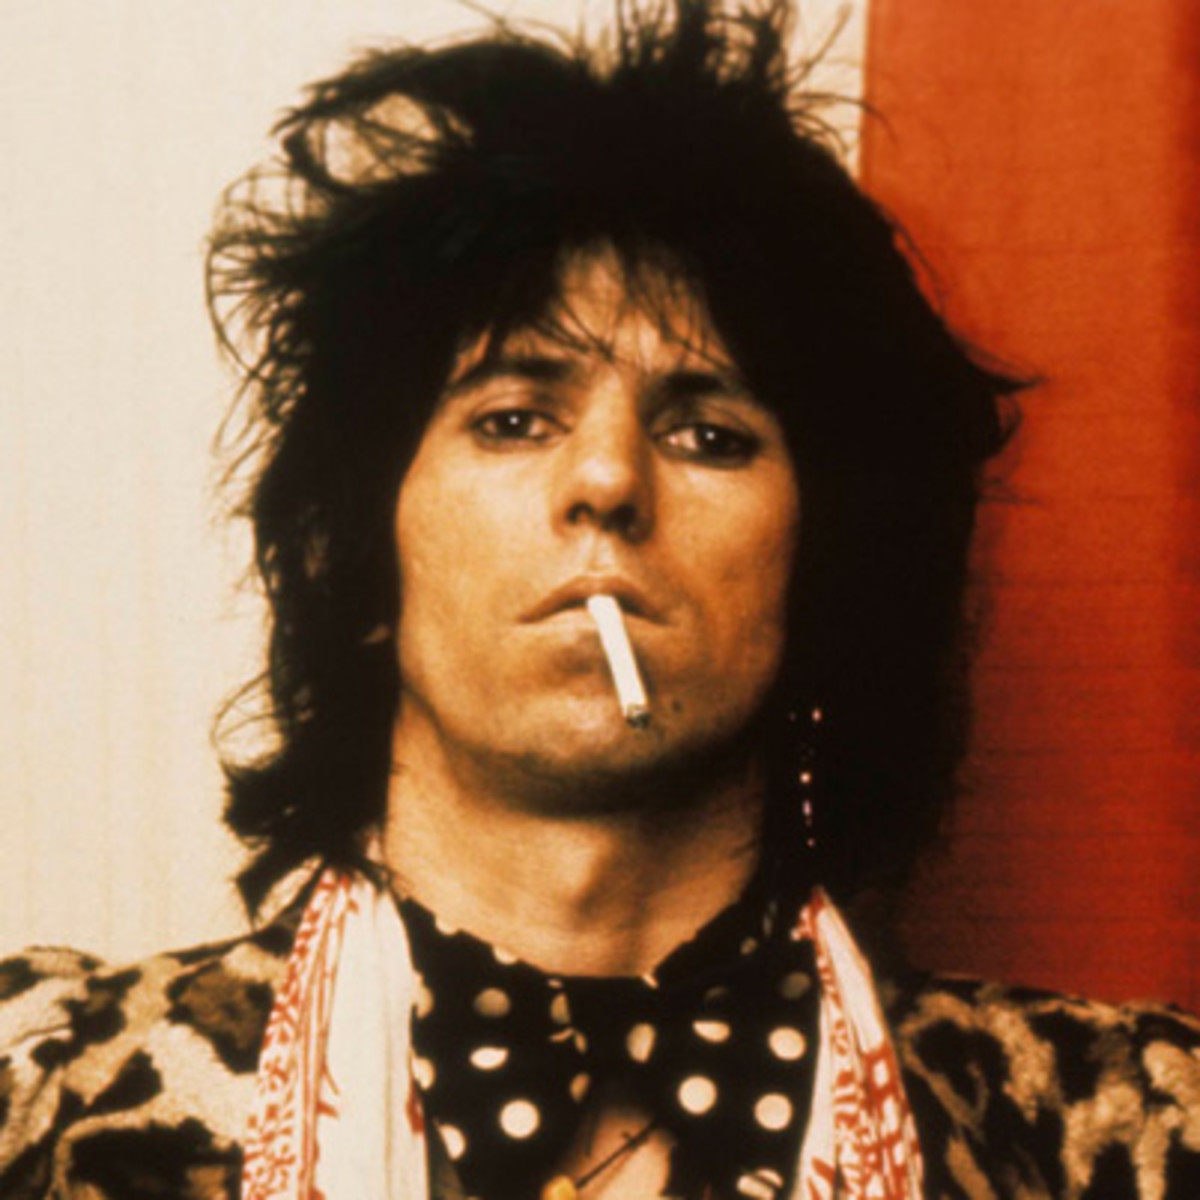 keith-richards-454710-3-402.jpg